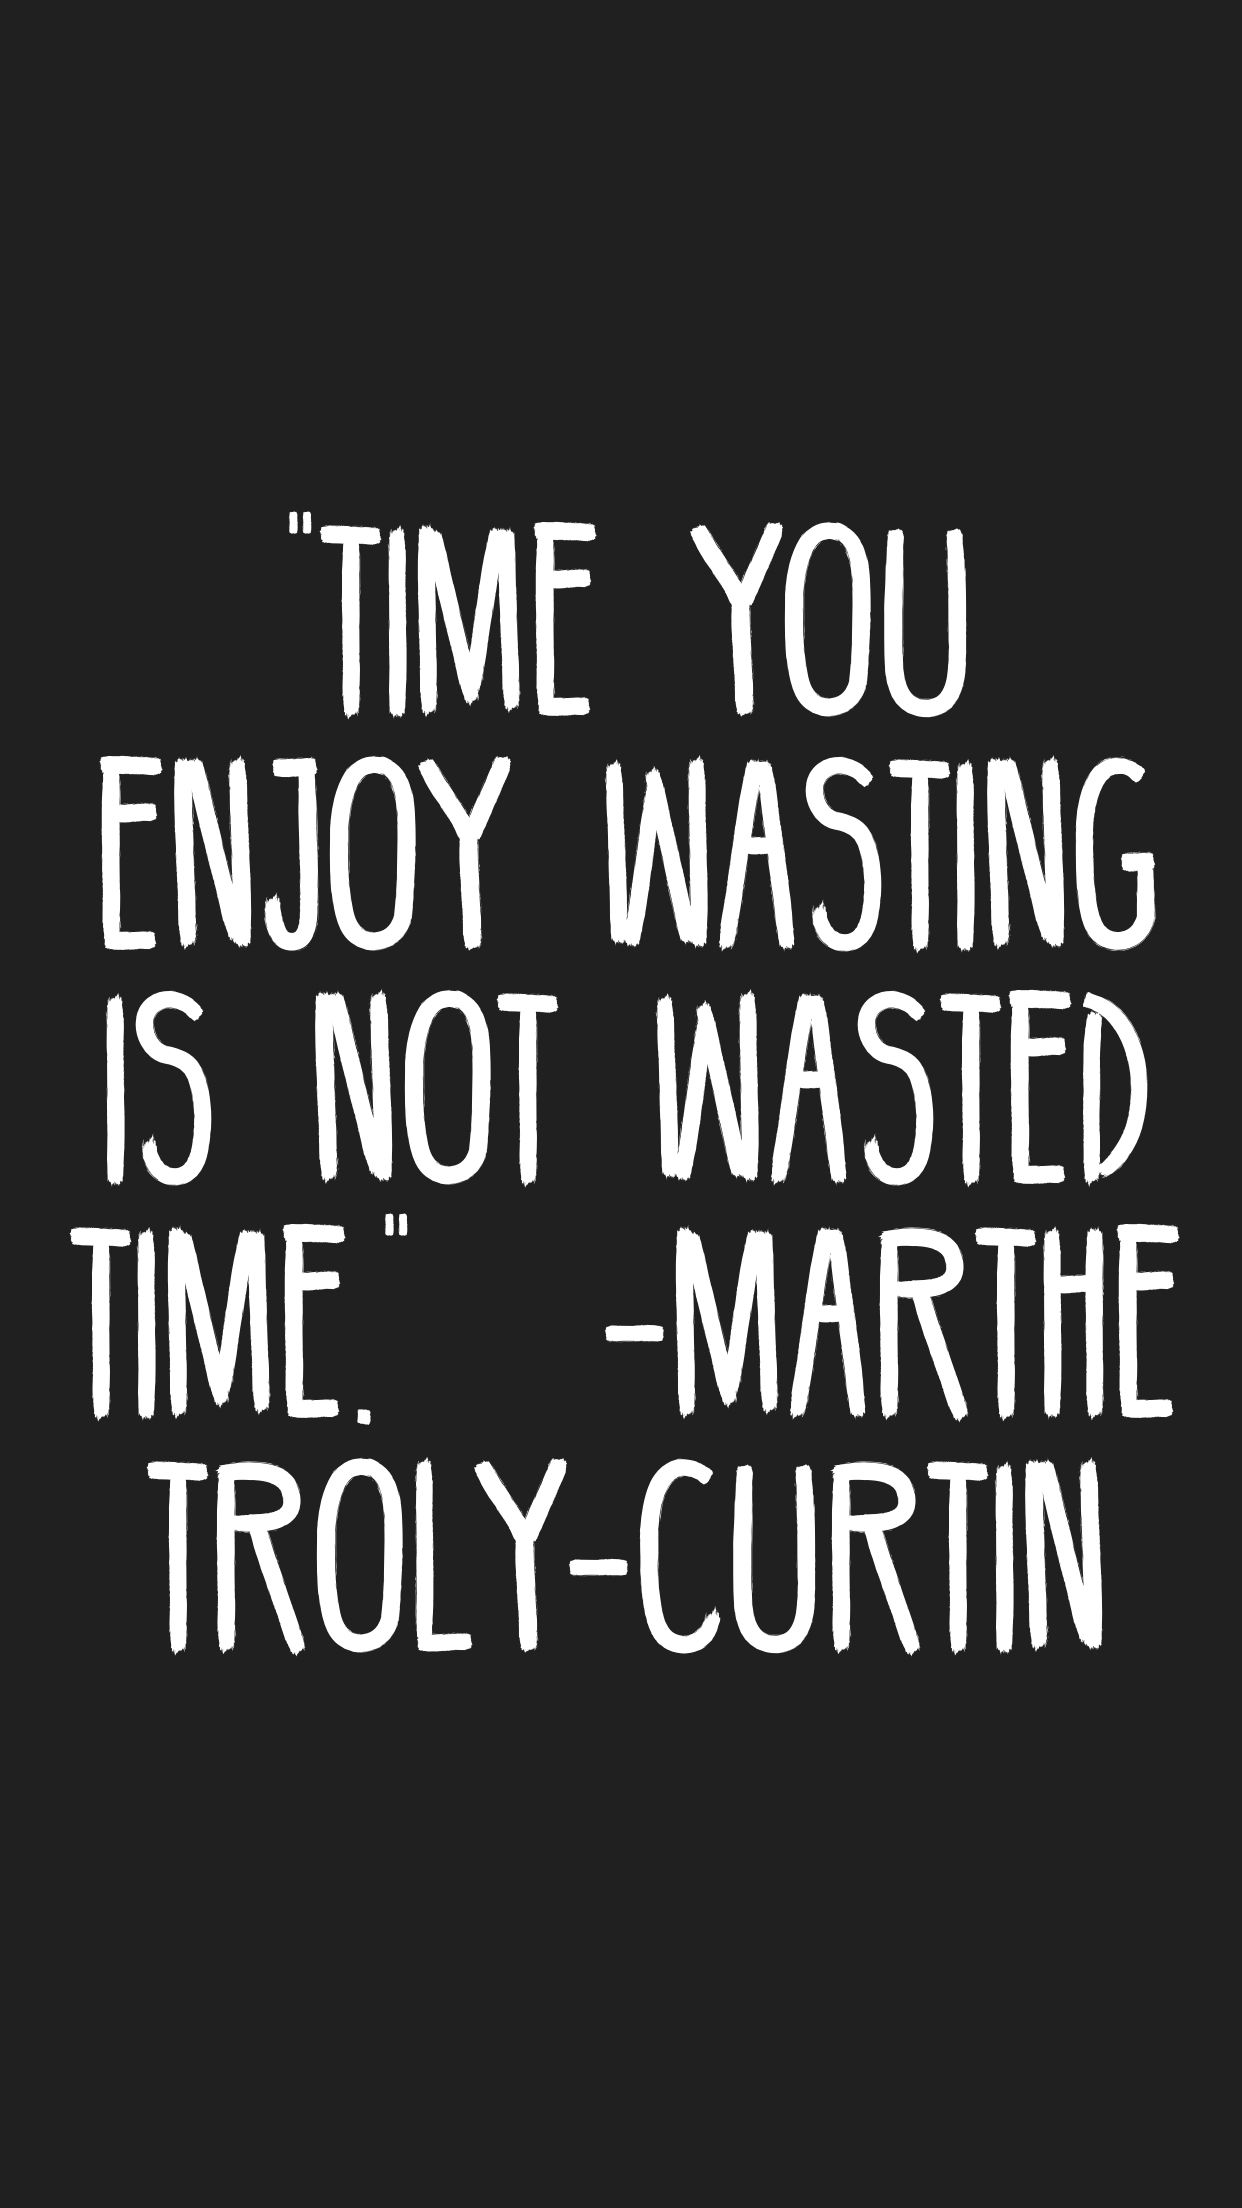 Time You Enjoy Wasting Is Not Wasted Time Marthe Troly Curtin